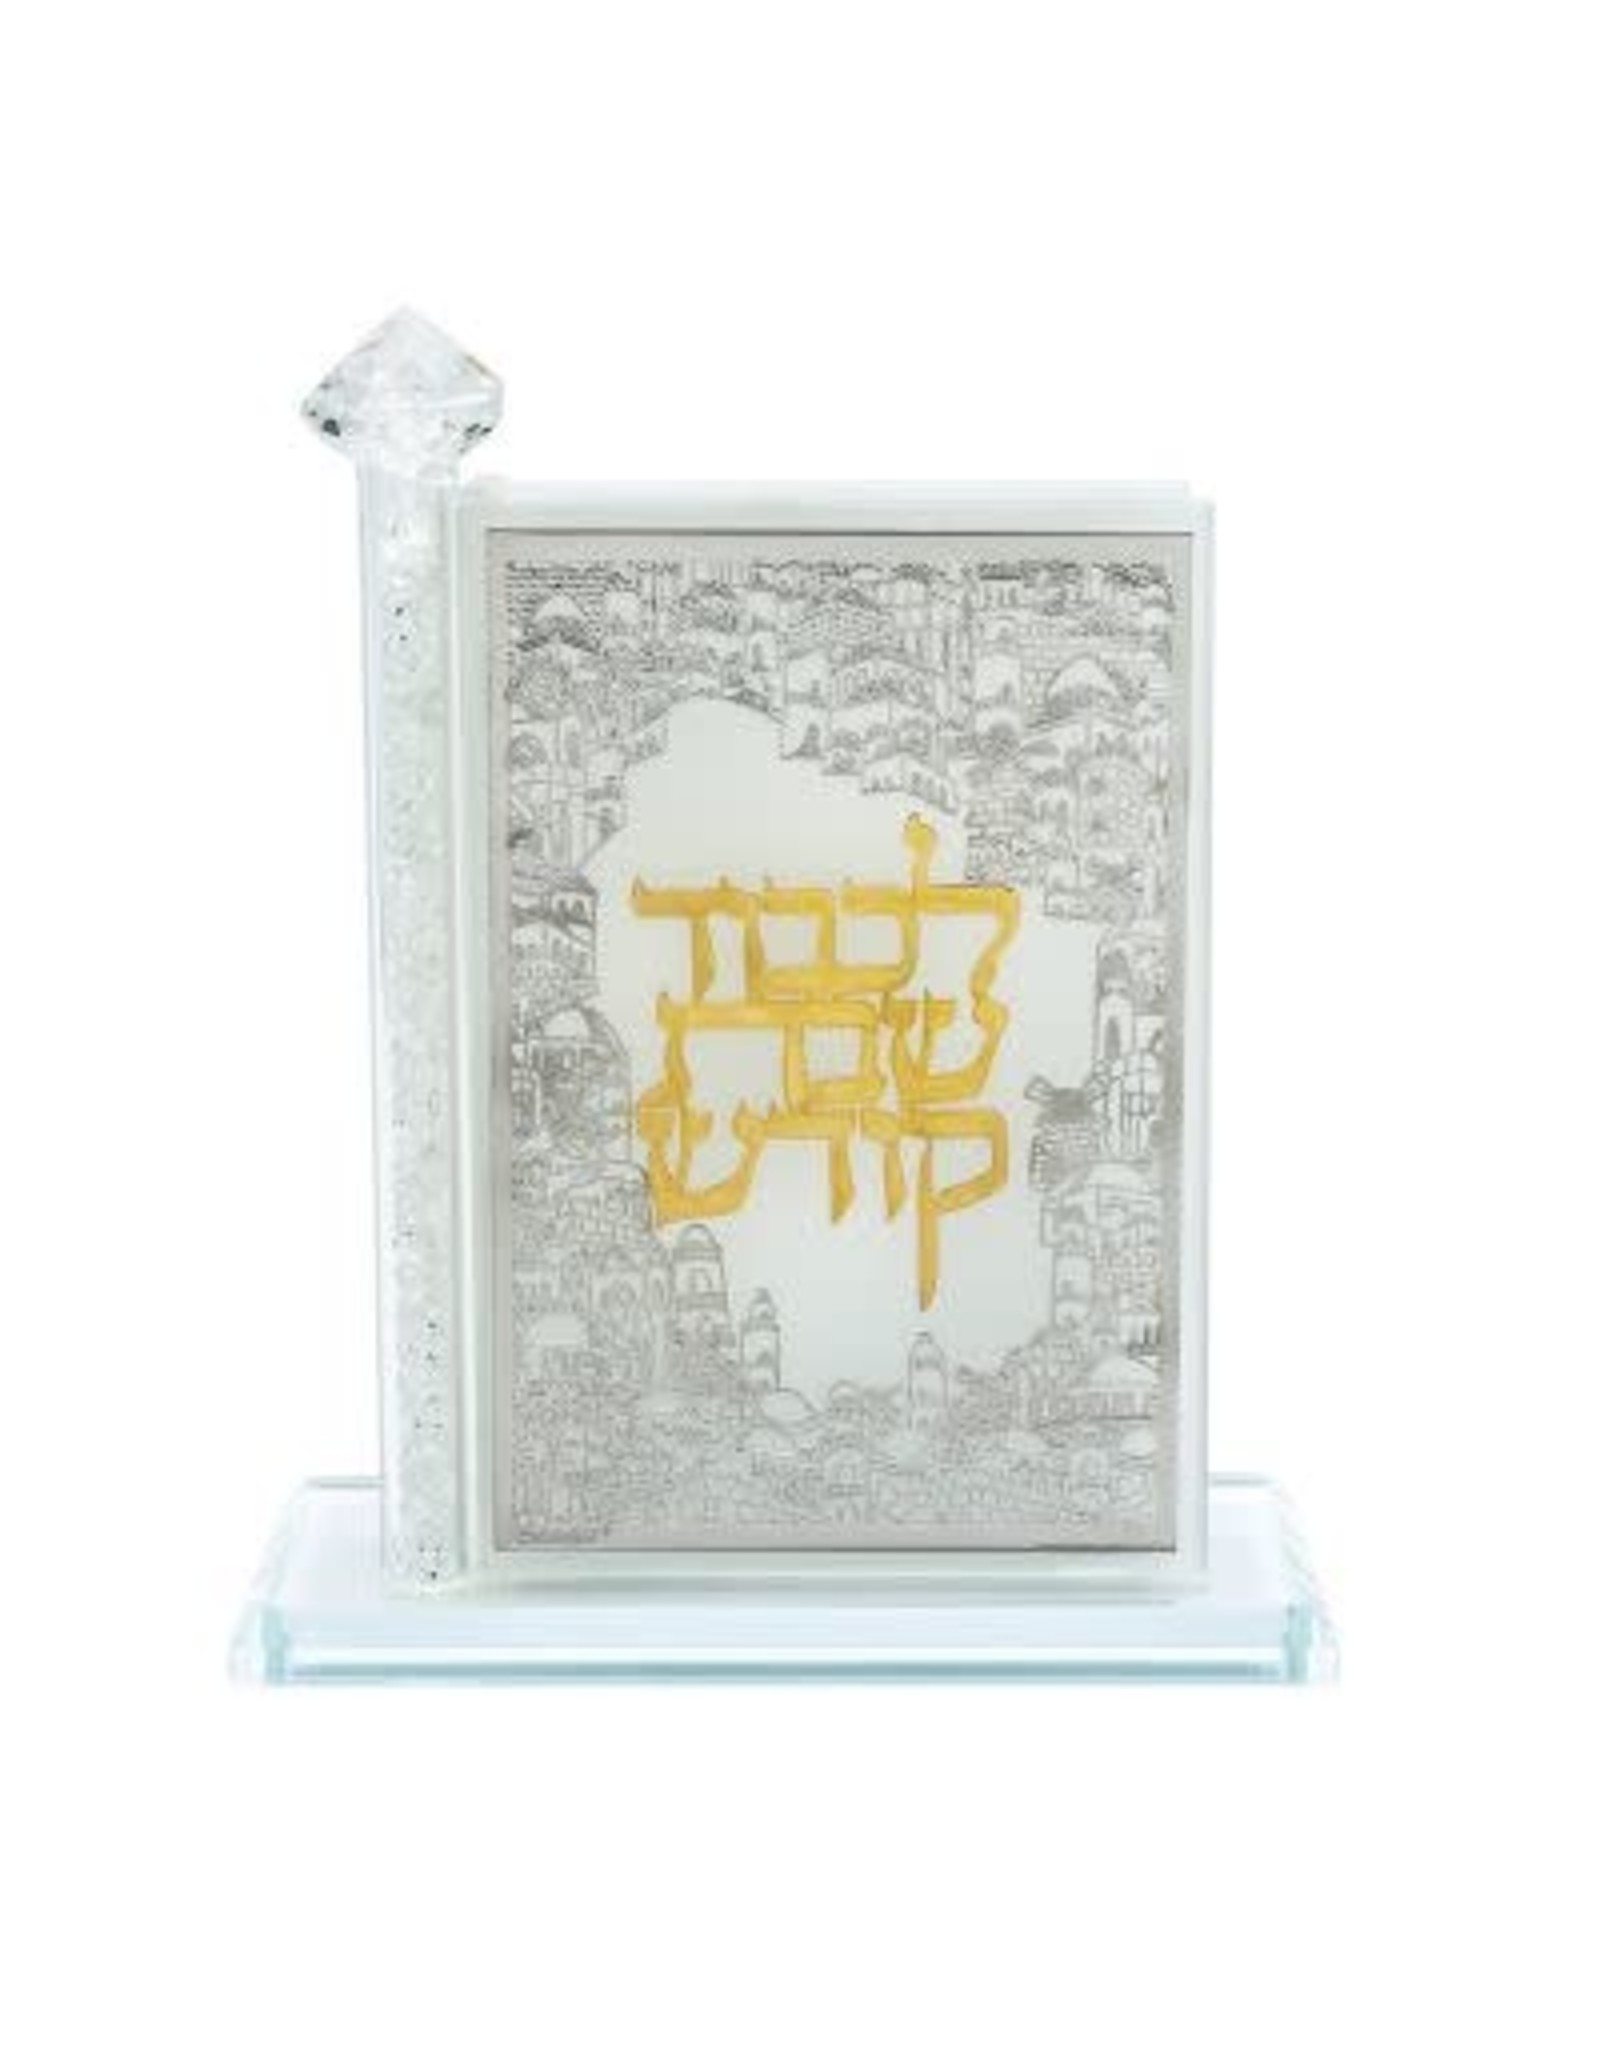 181010 Crystal Match Box Standing Combined Gold and Silver plate